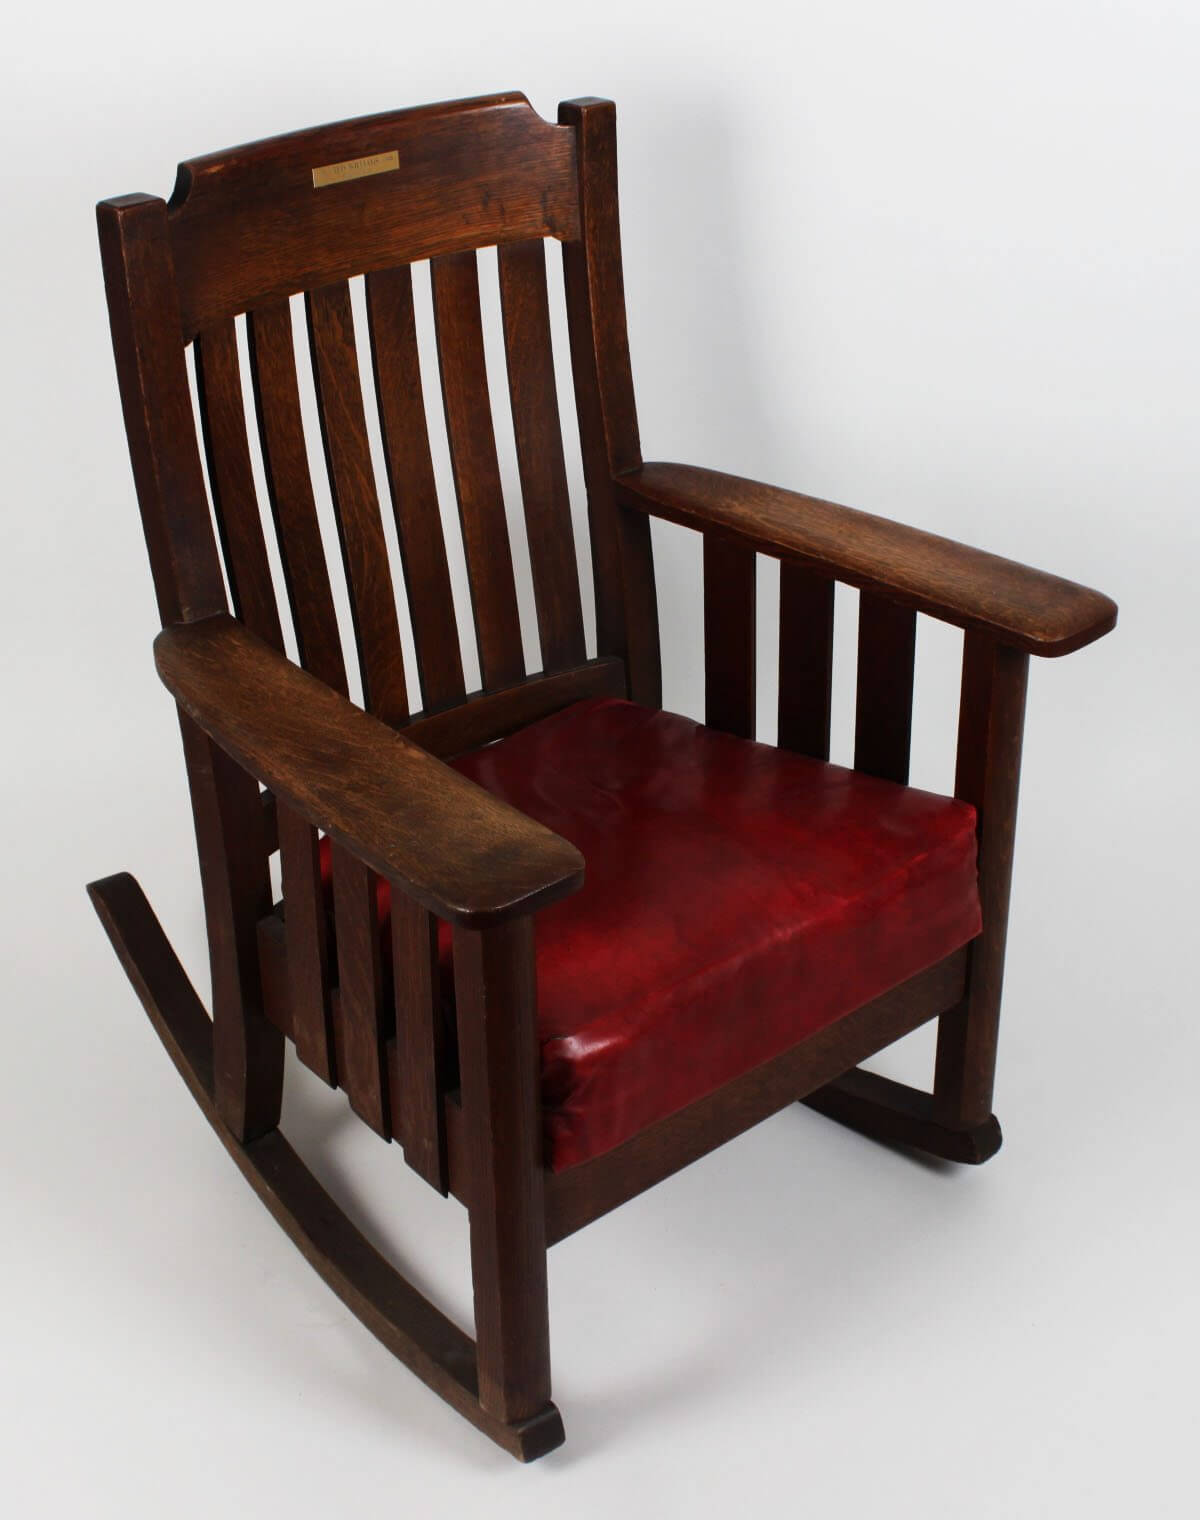 Red Rocking Chair Ted Williams Rocking Chair Boys Club 1960s Boston Red Sox